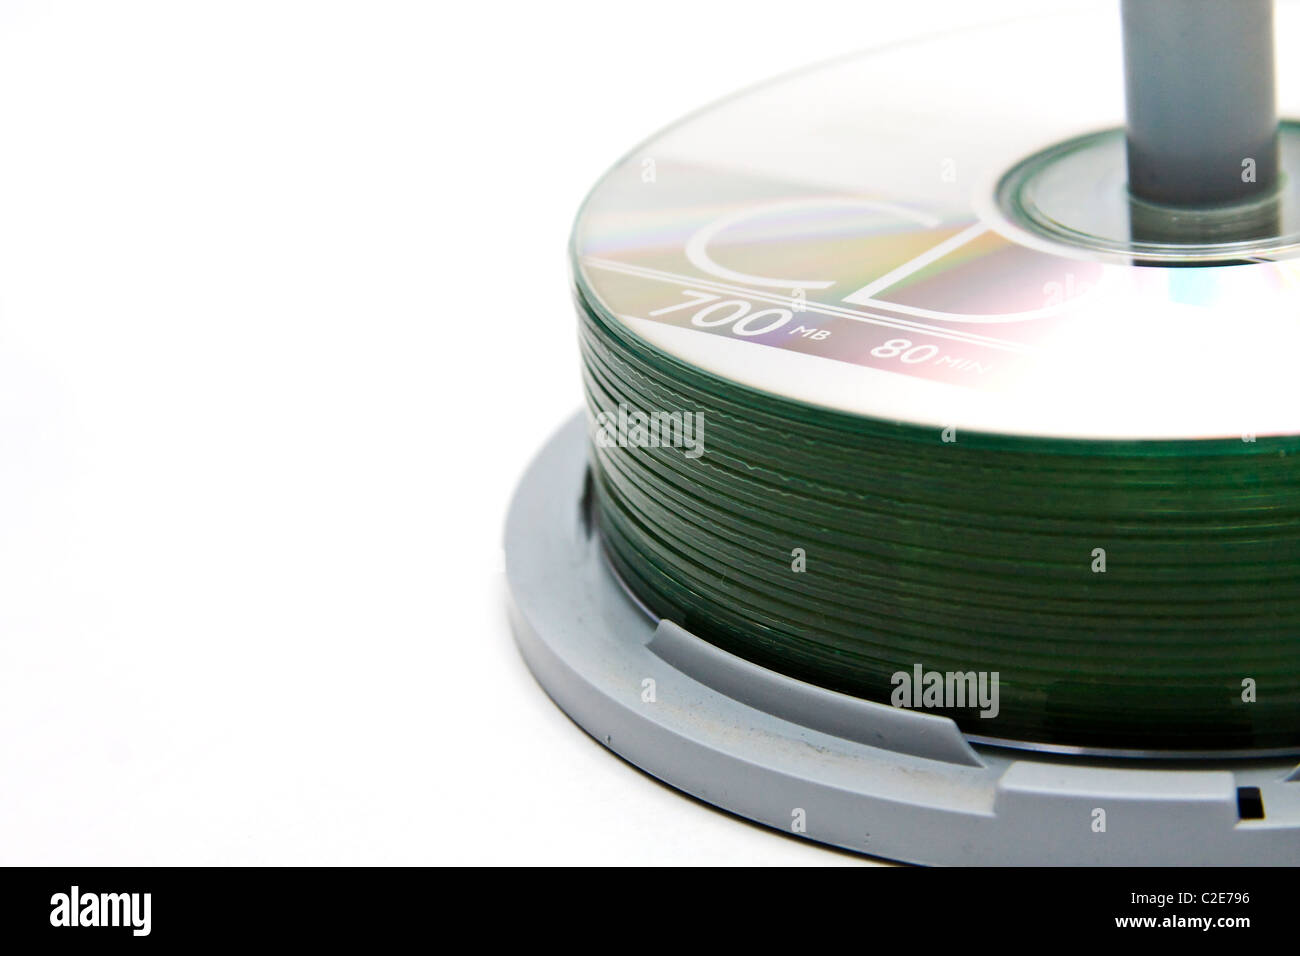 A spindle of recordable compact discs - Stock Image